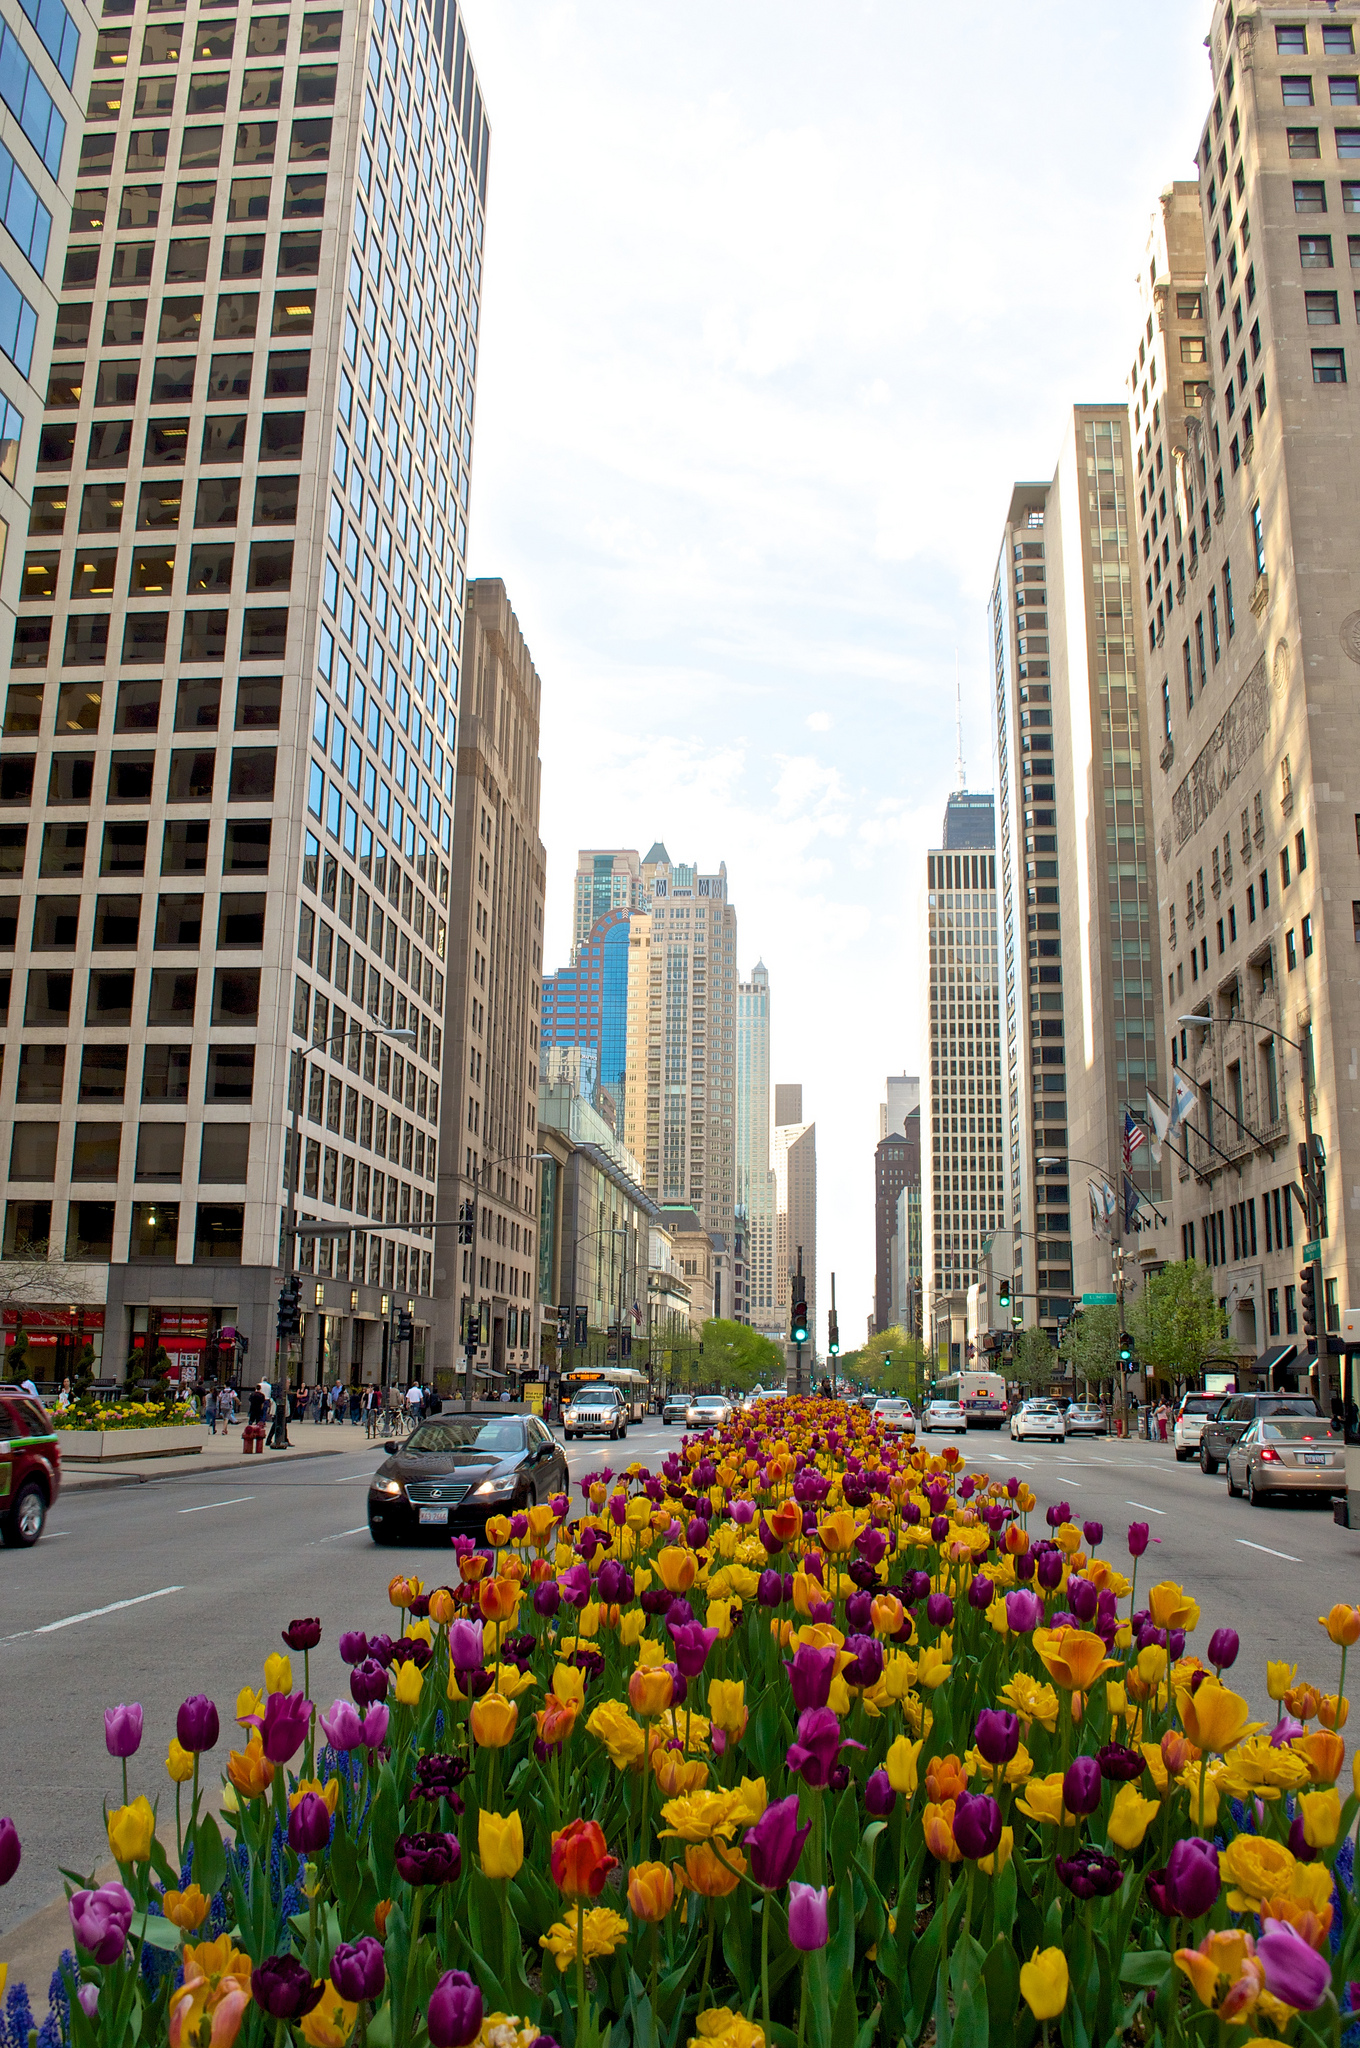 Magnificent Mile - Road in Chicago - Thousand Wonders